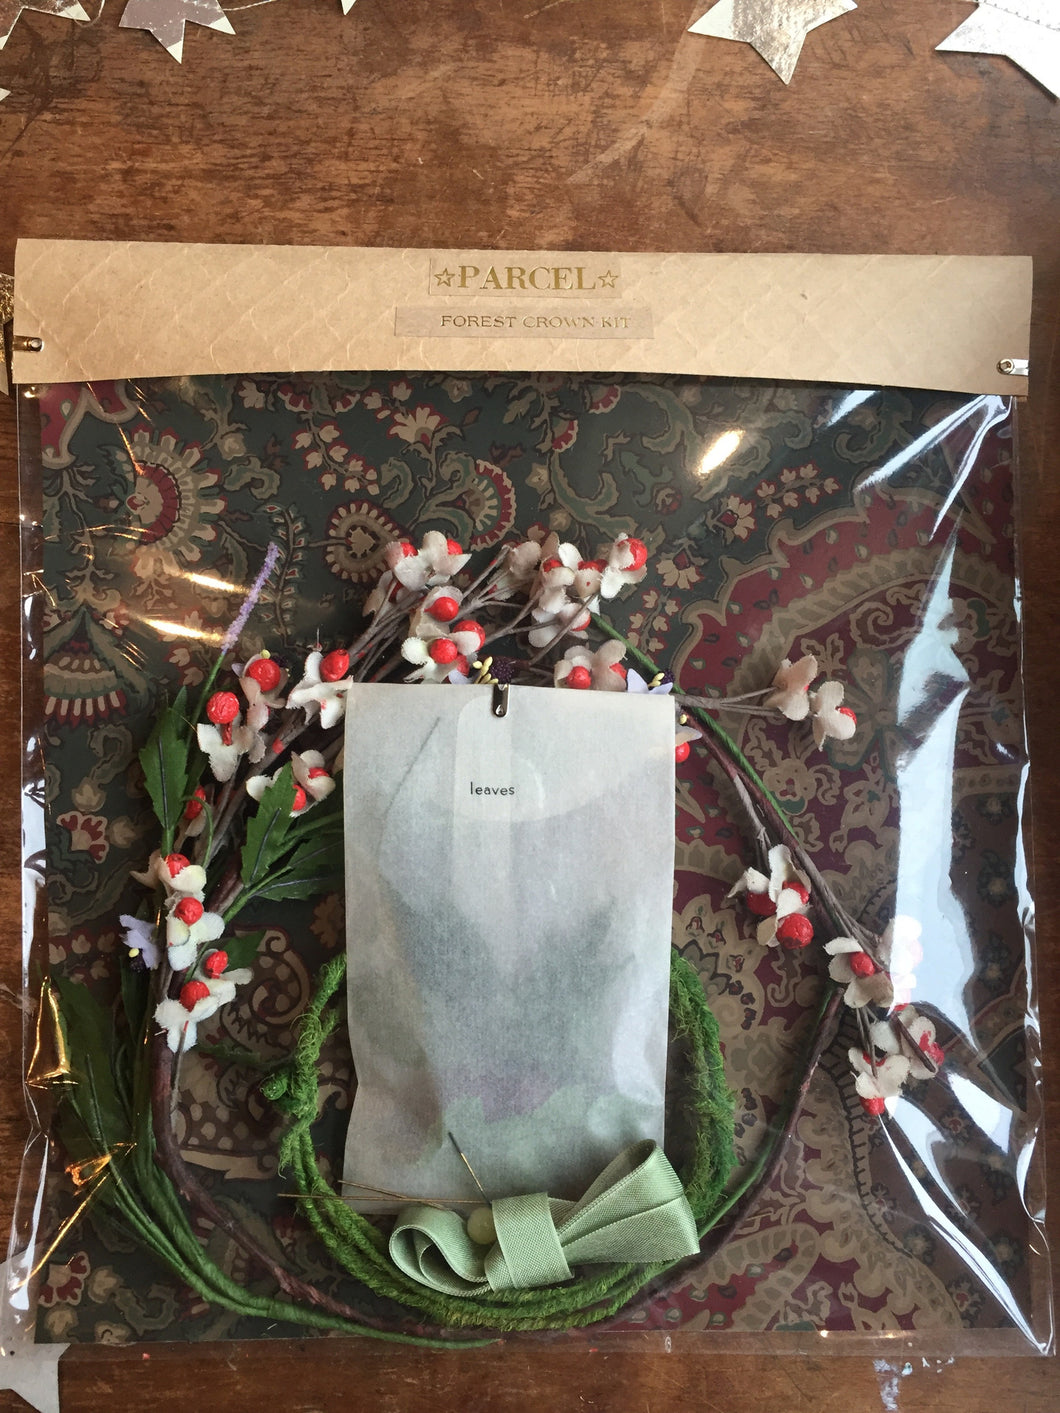 Forest Crown Kits - PARCEL